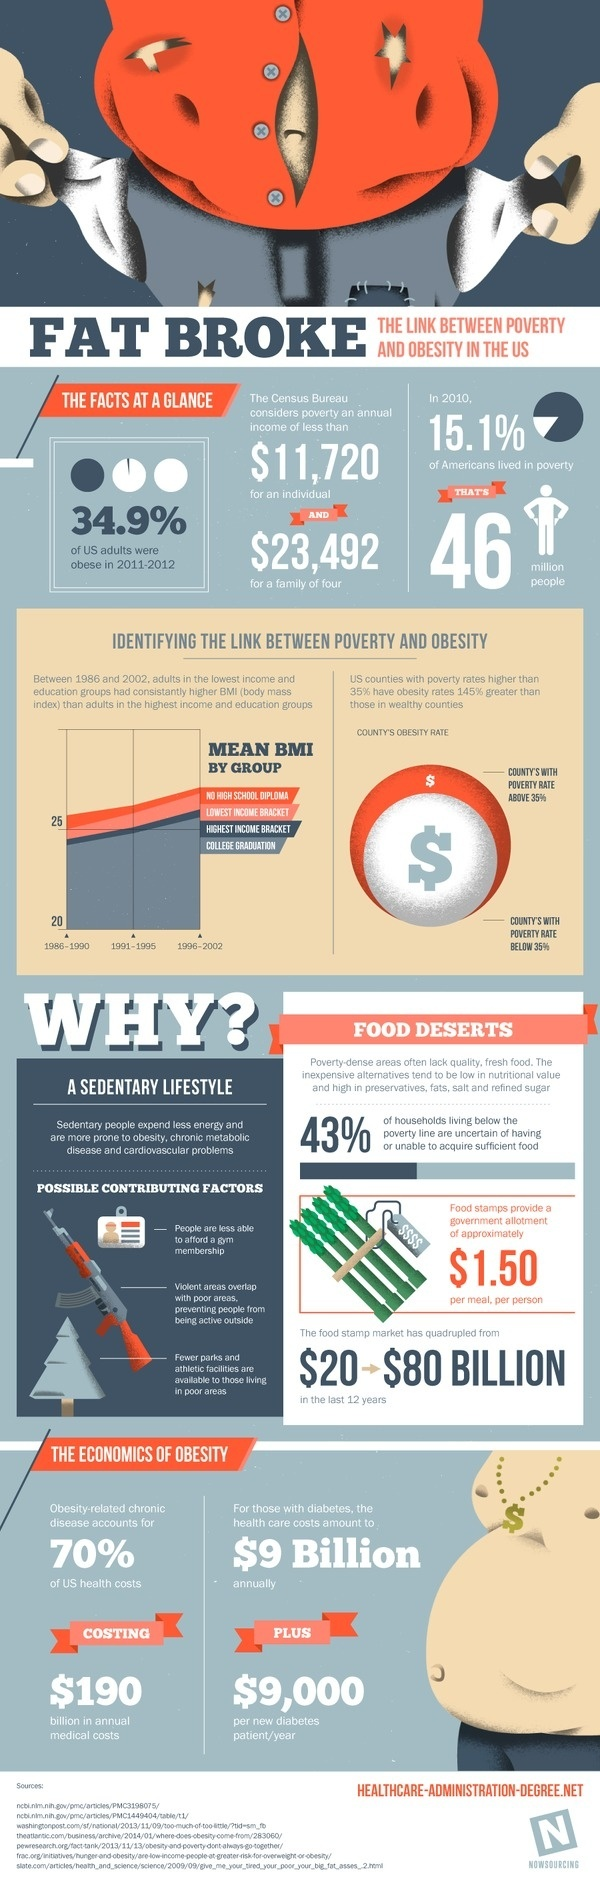 Fat Broke: The Link Between Poverty and Obesity #poverty #obesity